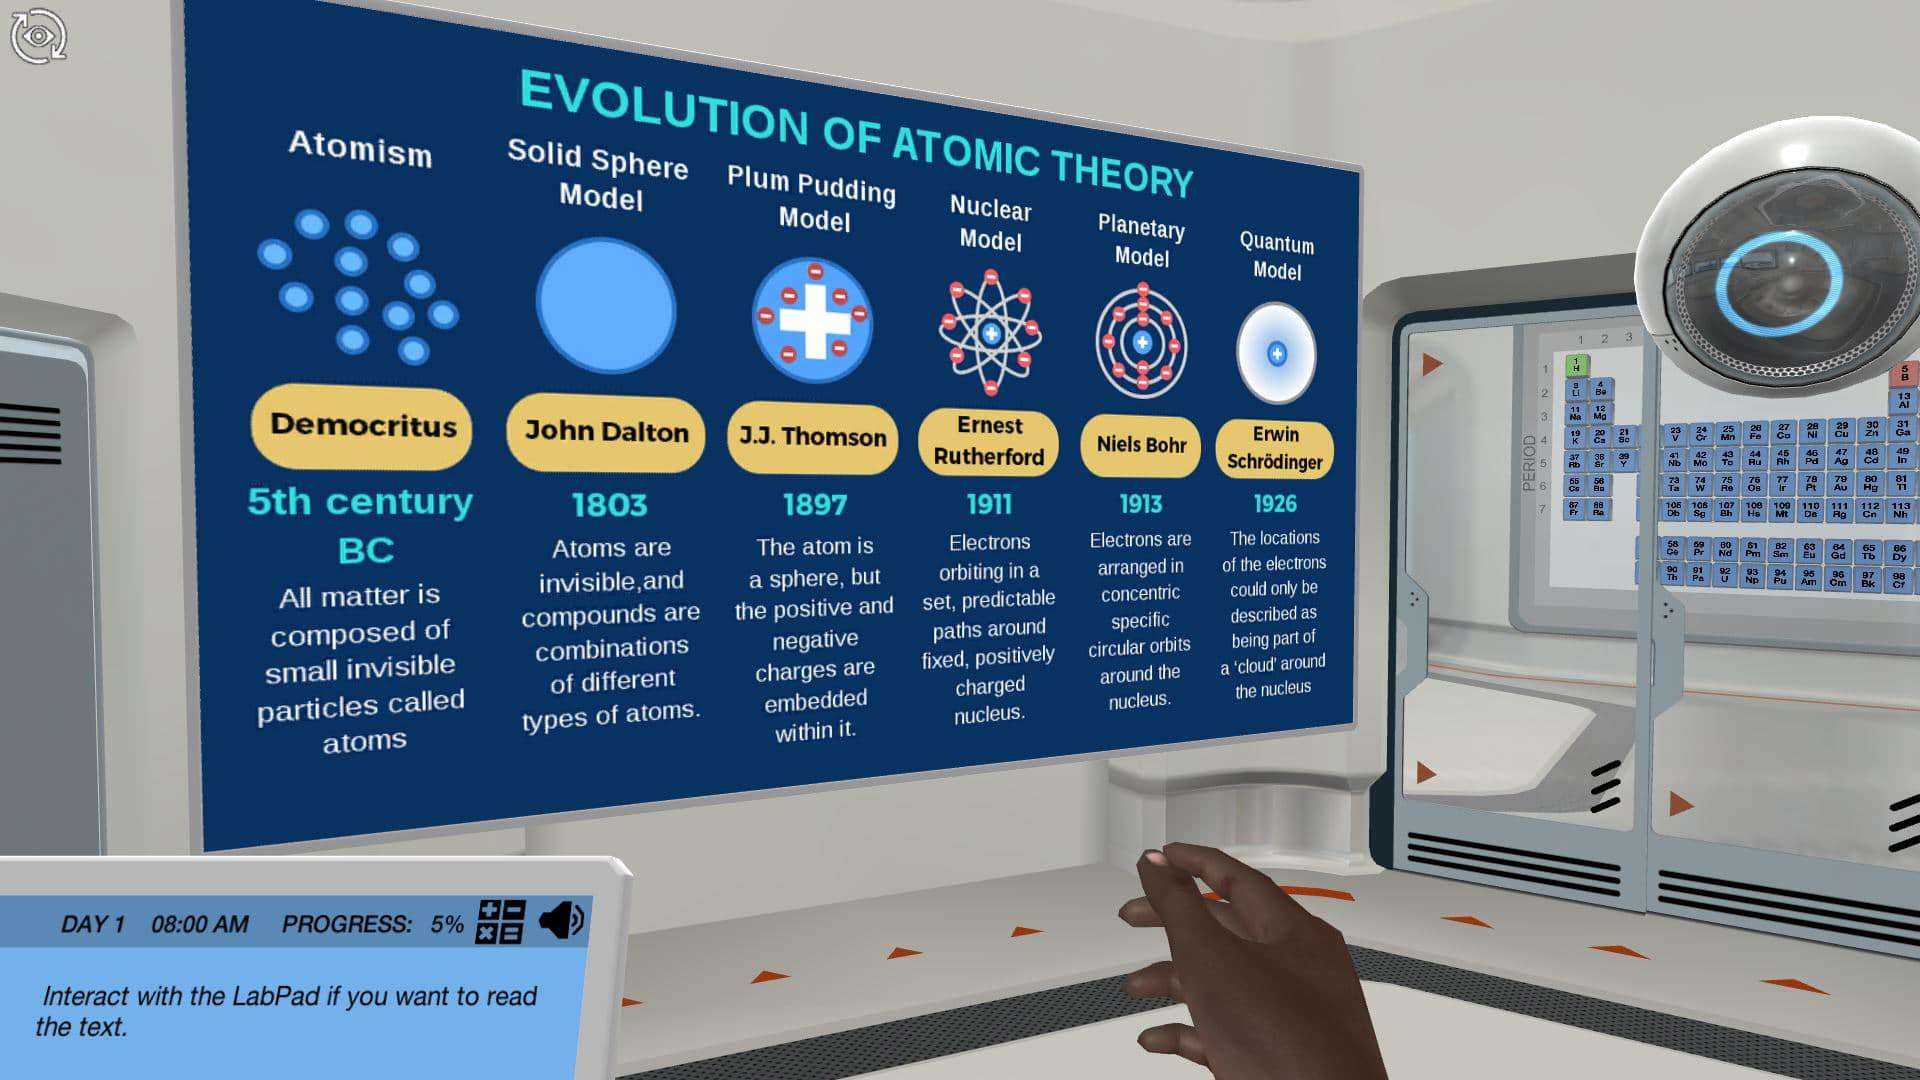 Atomic Structure - Assess the possibility of life on other planets